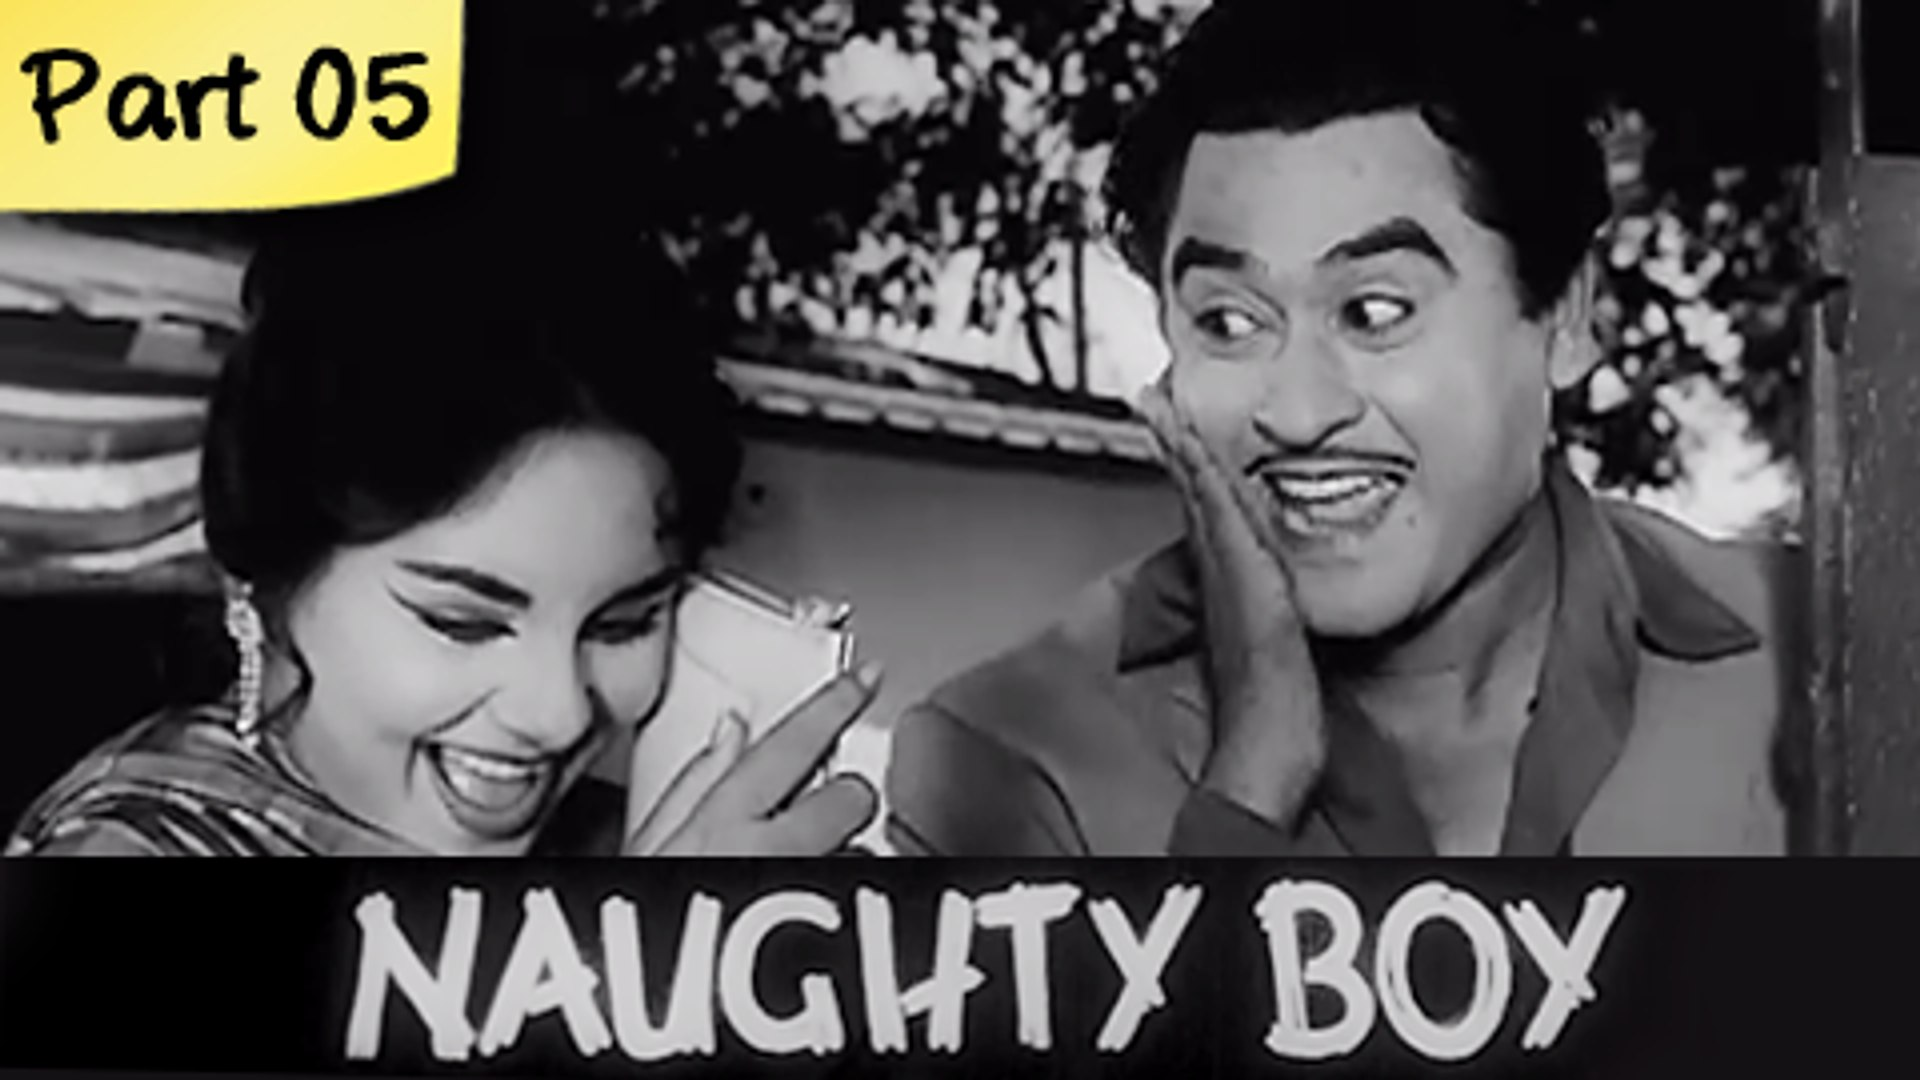 Naughty Boy - Part 05/09 - Classic Funny Hit Hindi Drama Movie - Kishore Kumar, Kalpana